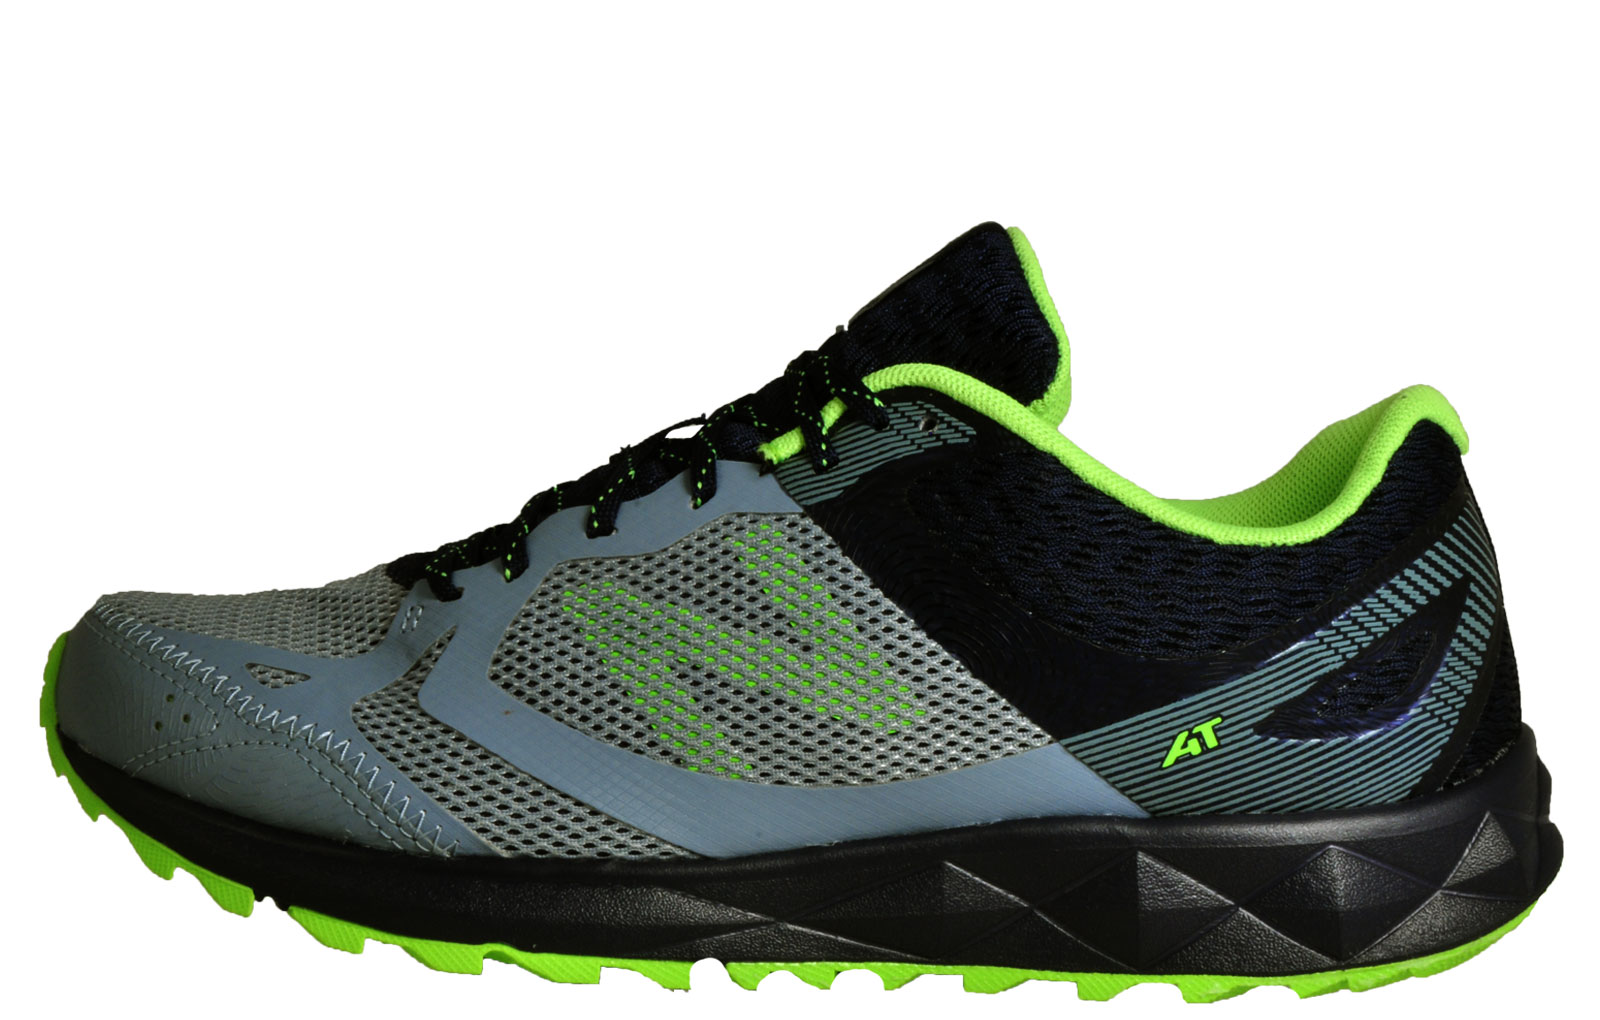 check out 4946c 5bb32 ... italy new balance 590 v3 mens all terrain trail running shoes grey  e8b77 086f9